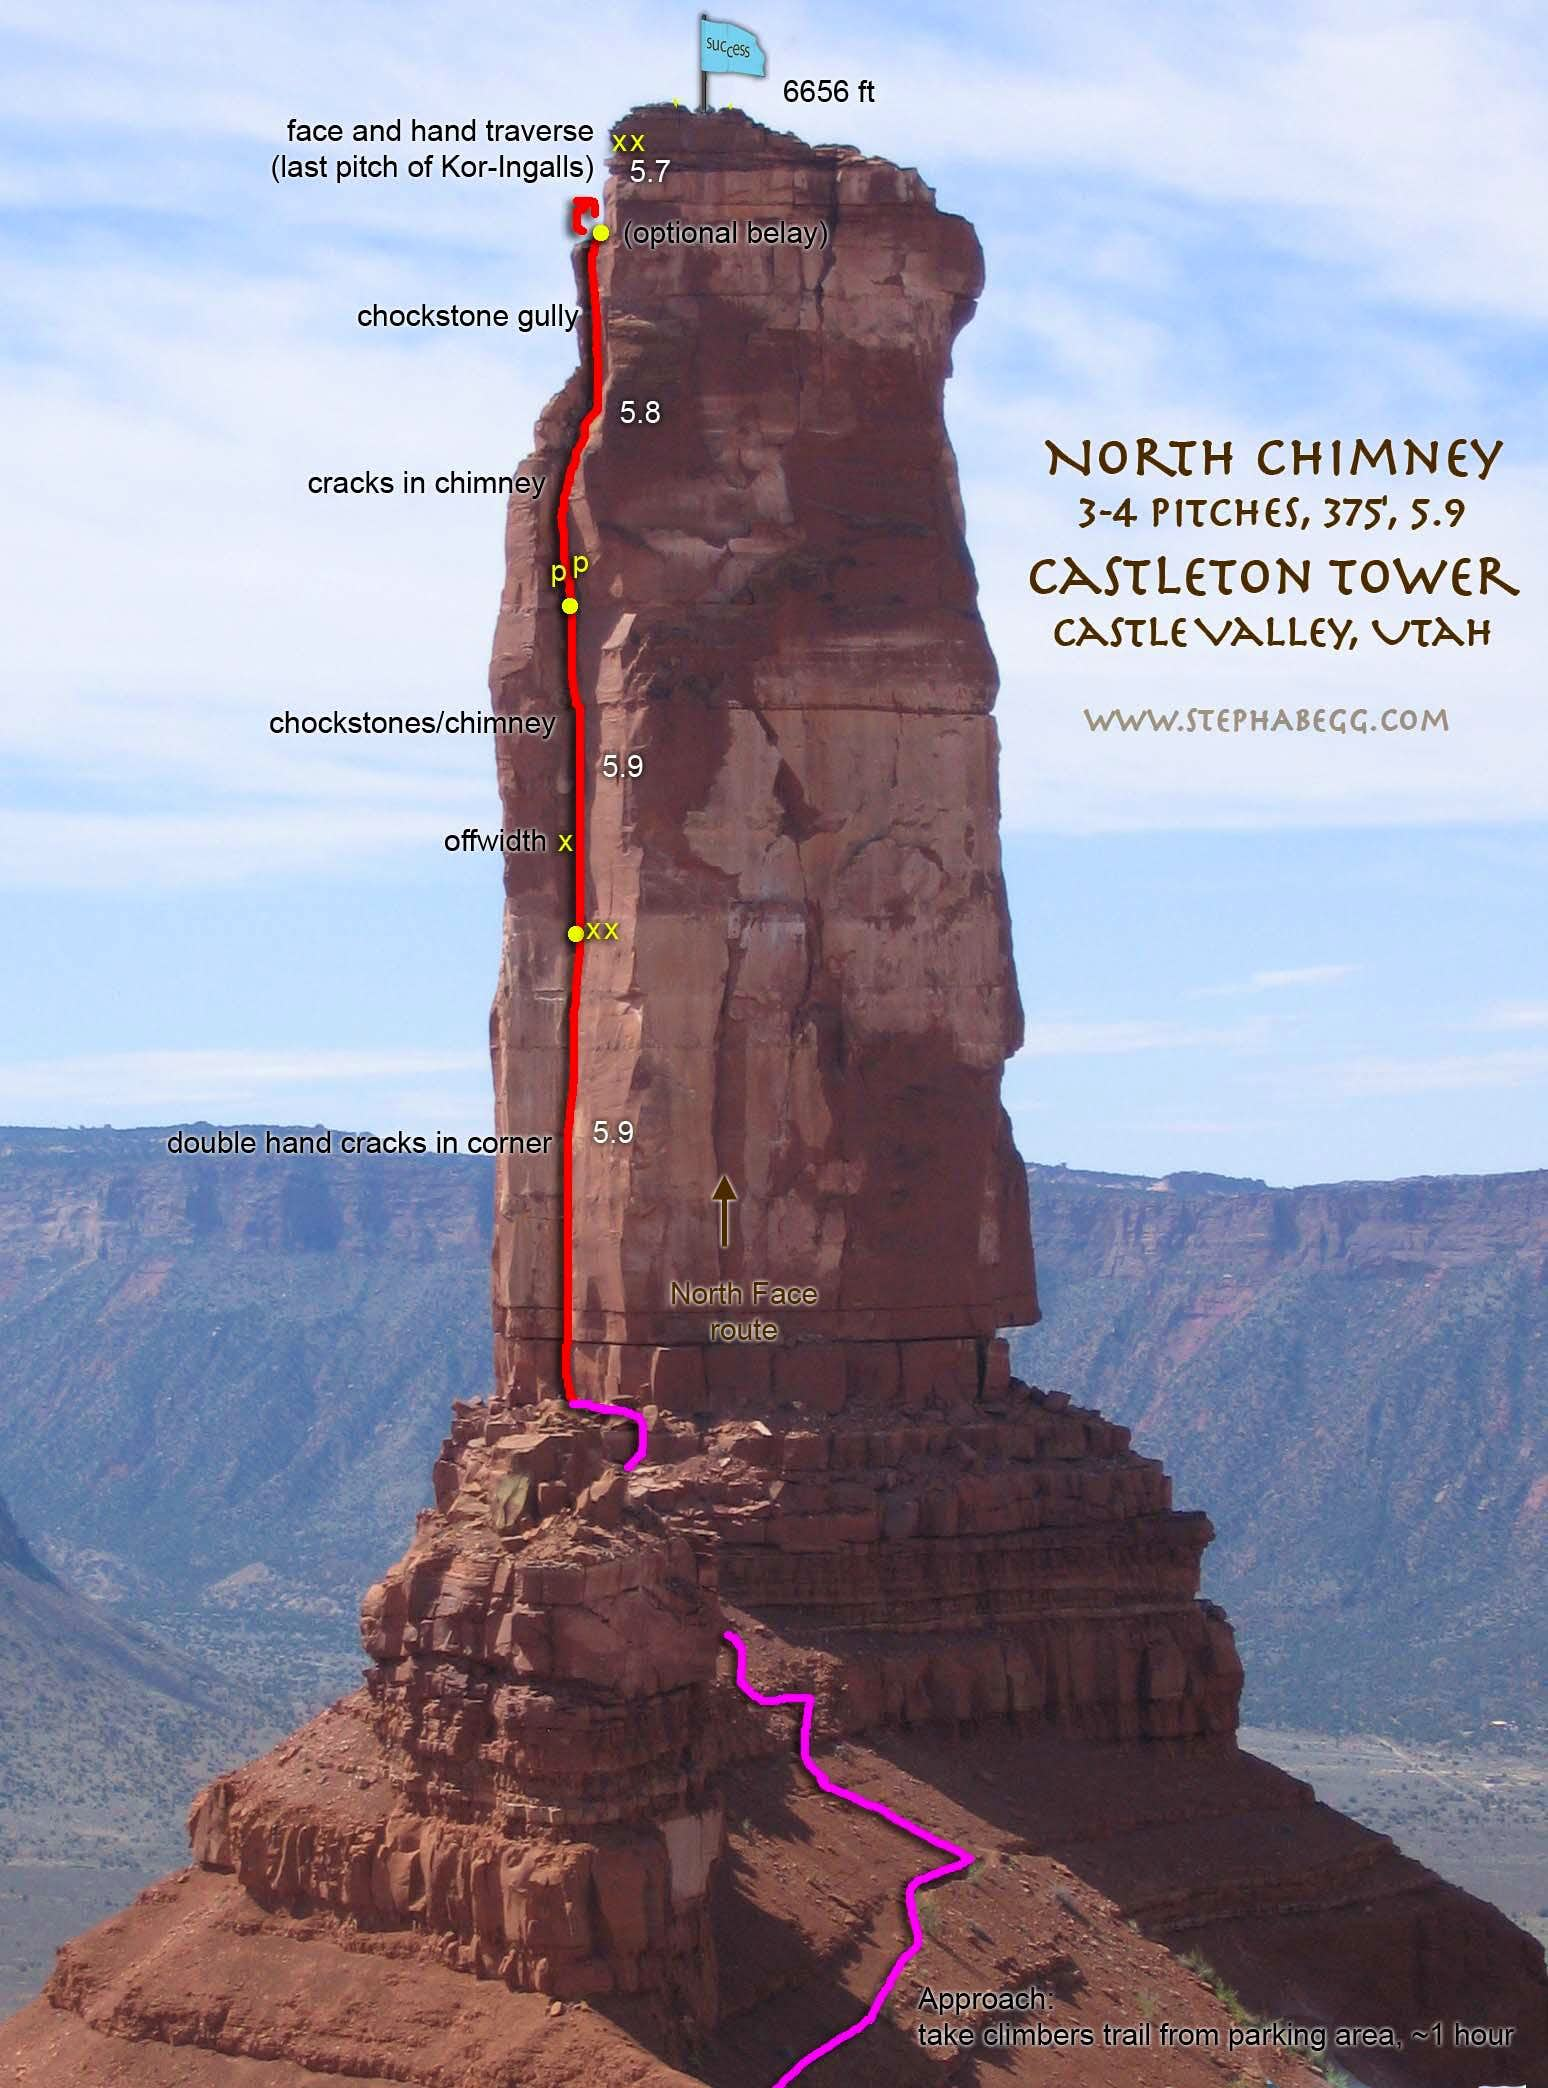 4 Days & 5 Climbs near Moab: Castleton, Moses, Top of the World Overlook, Three Penguins, El Segundo